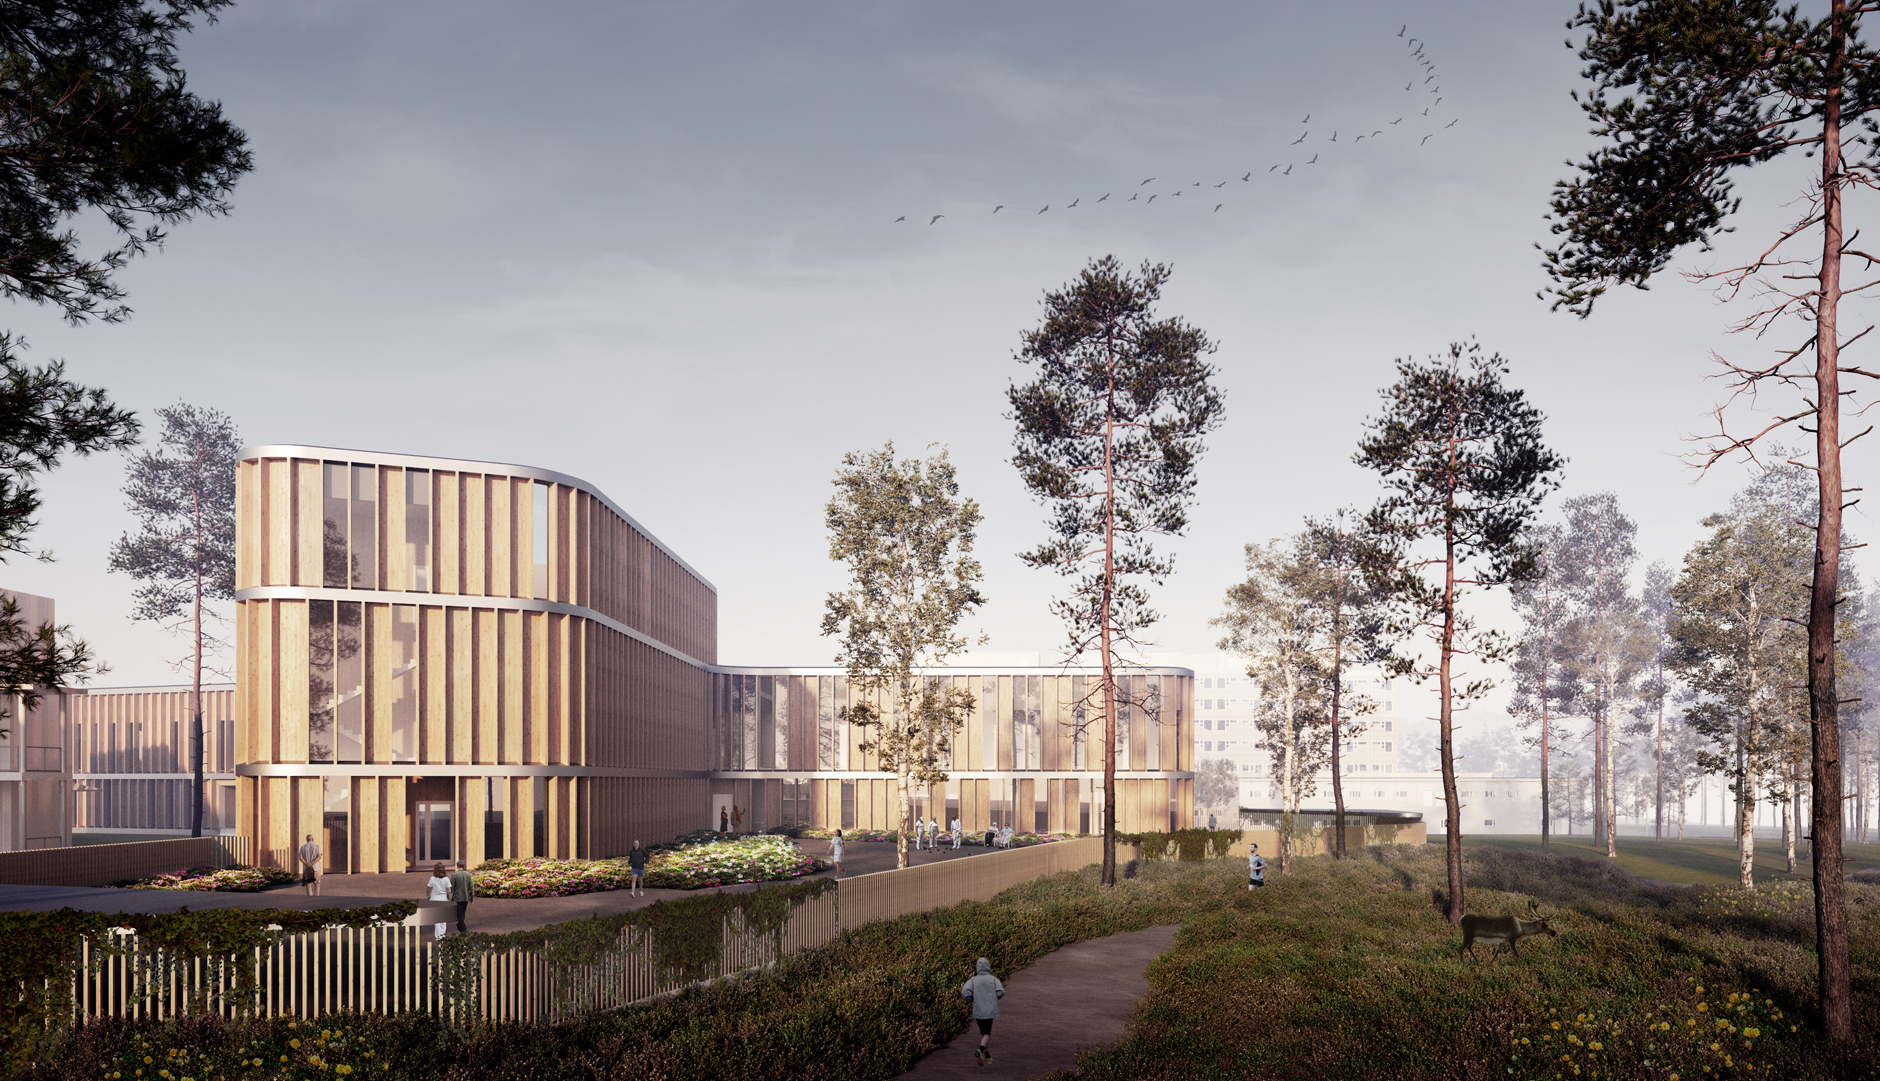 Exterior visualization of the Lapland Central Hospital designed by Verstas Architects